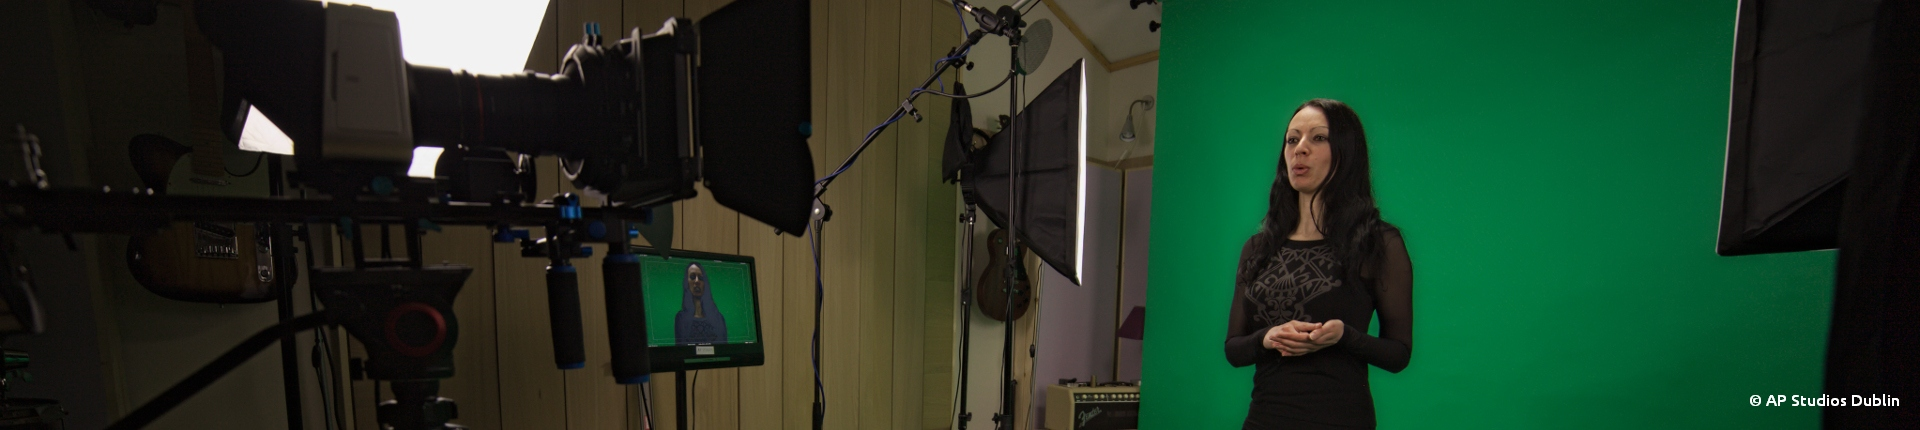 AP Recording Studios Green Screen Chroma Key 4k Raw Video